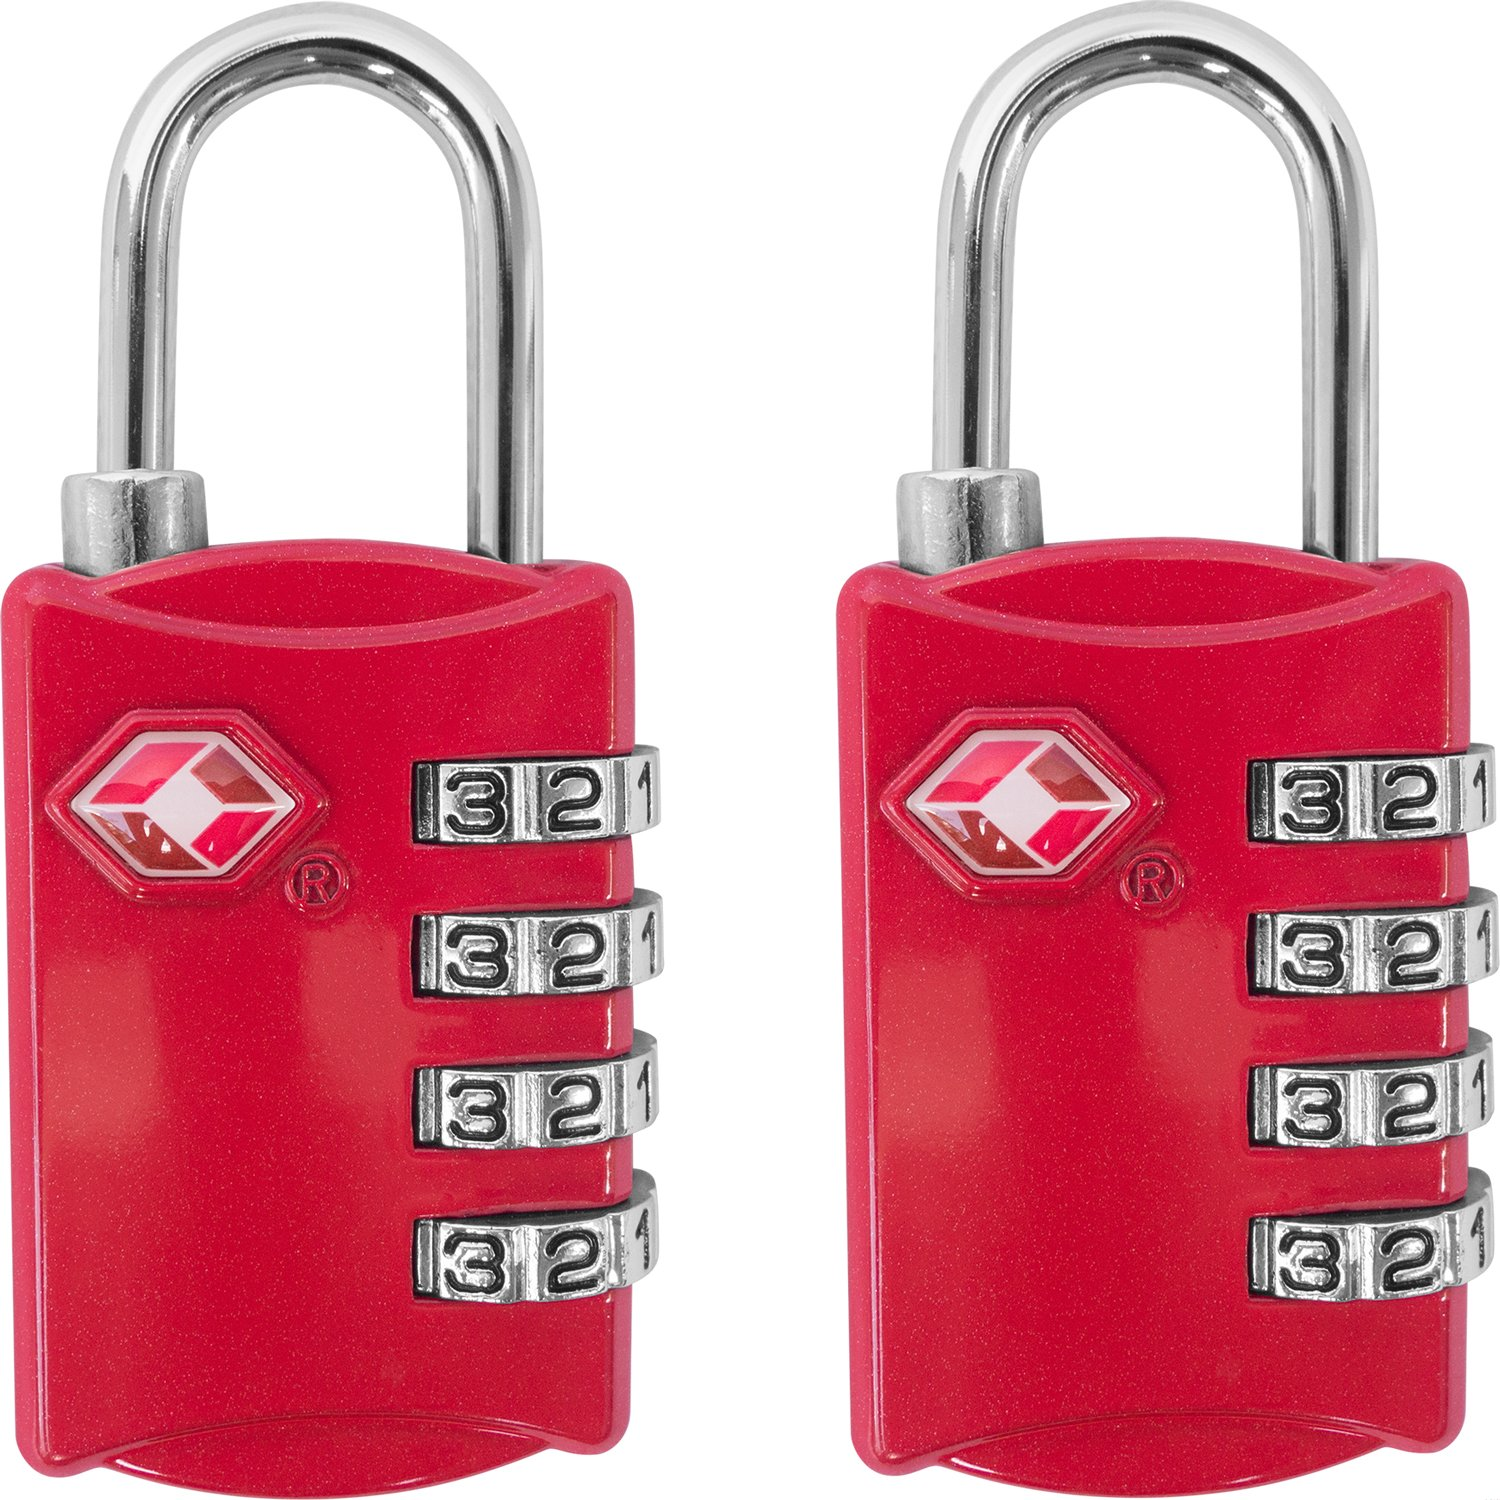 TSA Luggage Locks (2 Pack) - 4 Digit Combination Steel Padlocks - Approved Travel Lock for Suitcases & Baggage - RedTSA Luggage Locks (2 Pack) - 4 Digit Combination Steel Padlocks - Approved Travel Lock for Suitcases & Baggage - Red